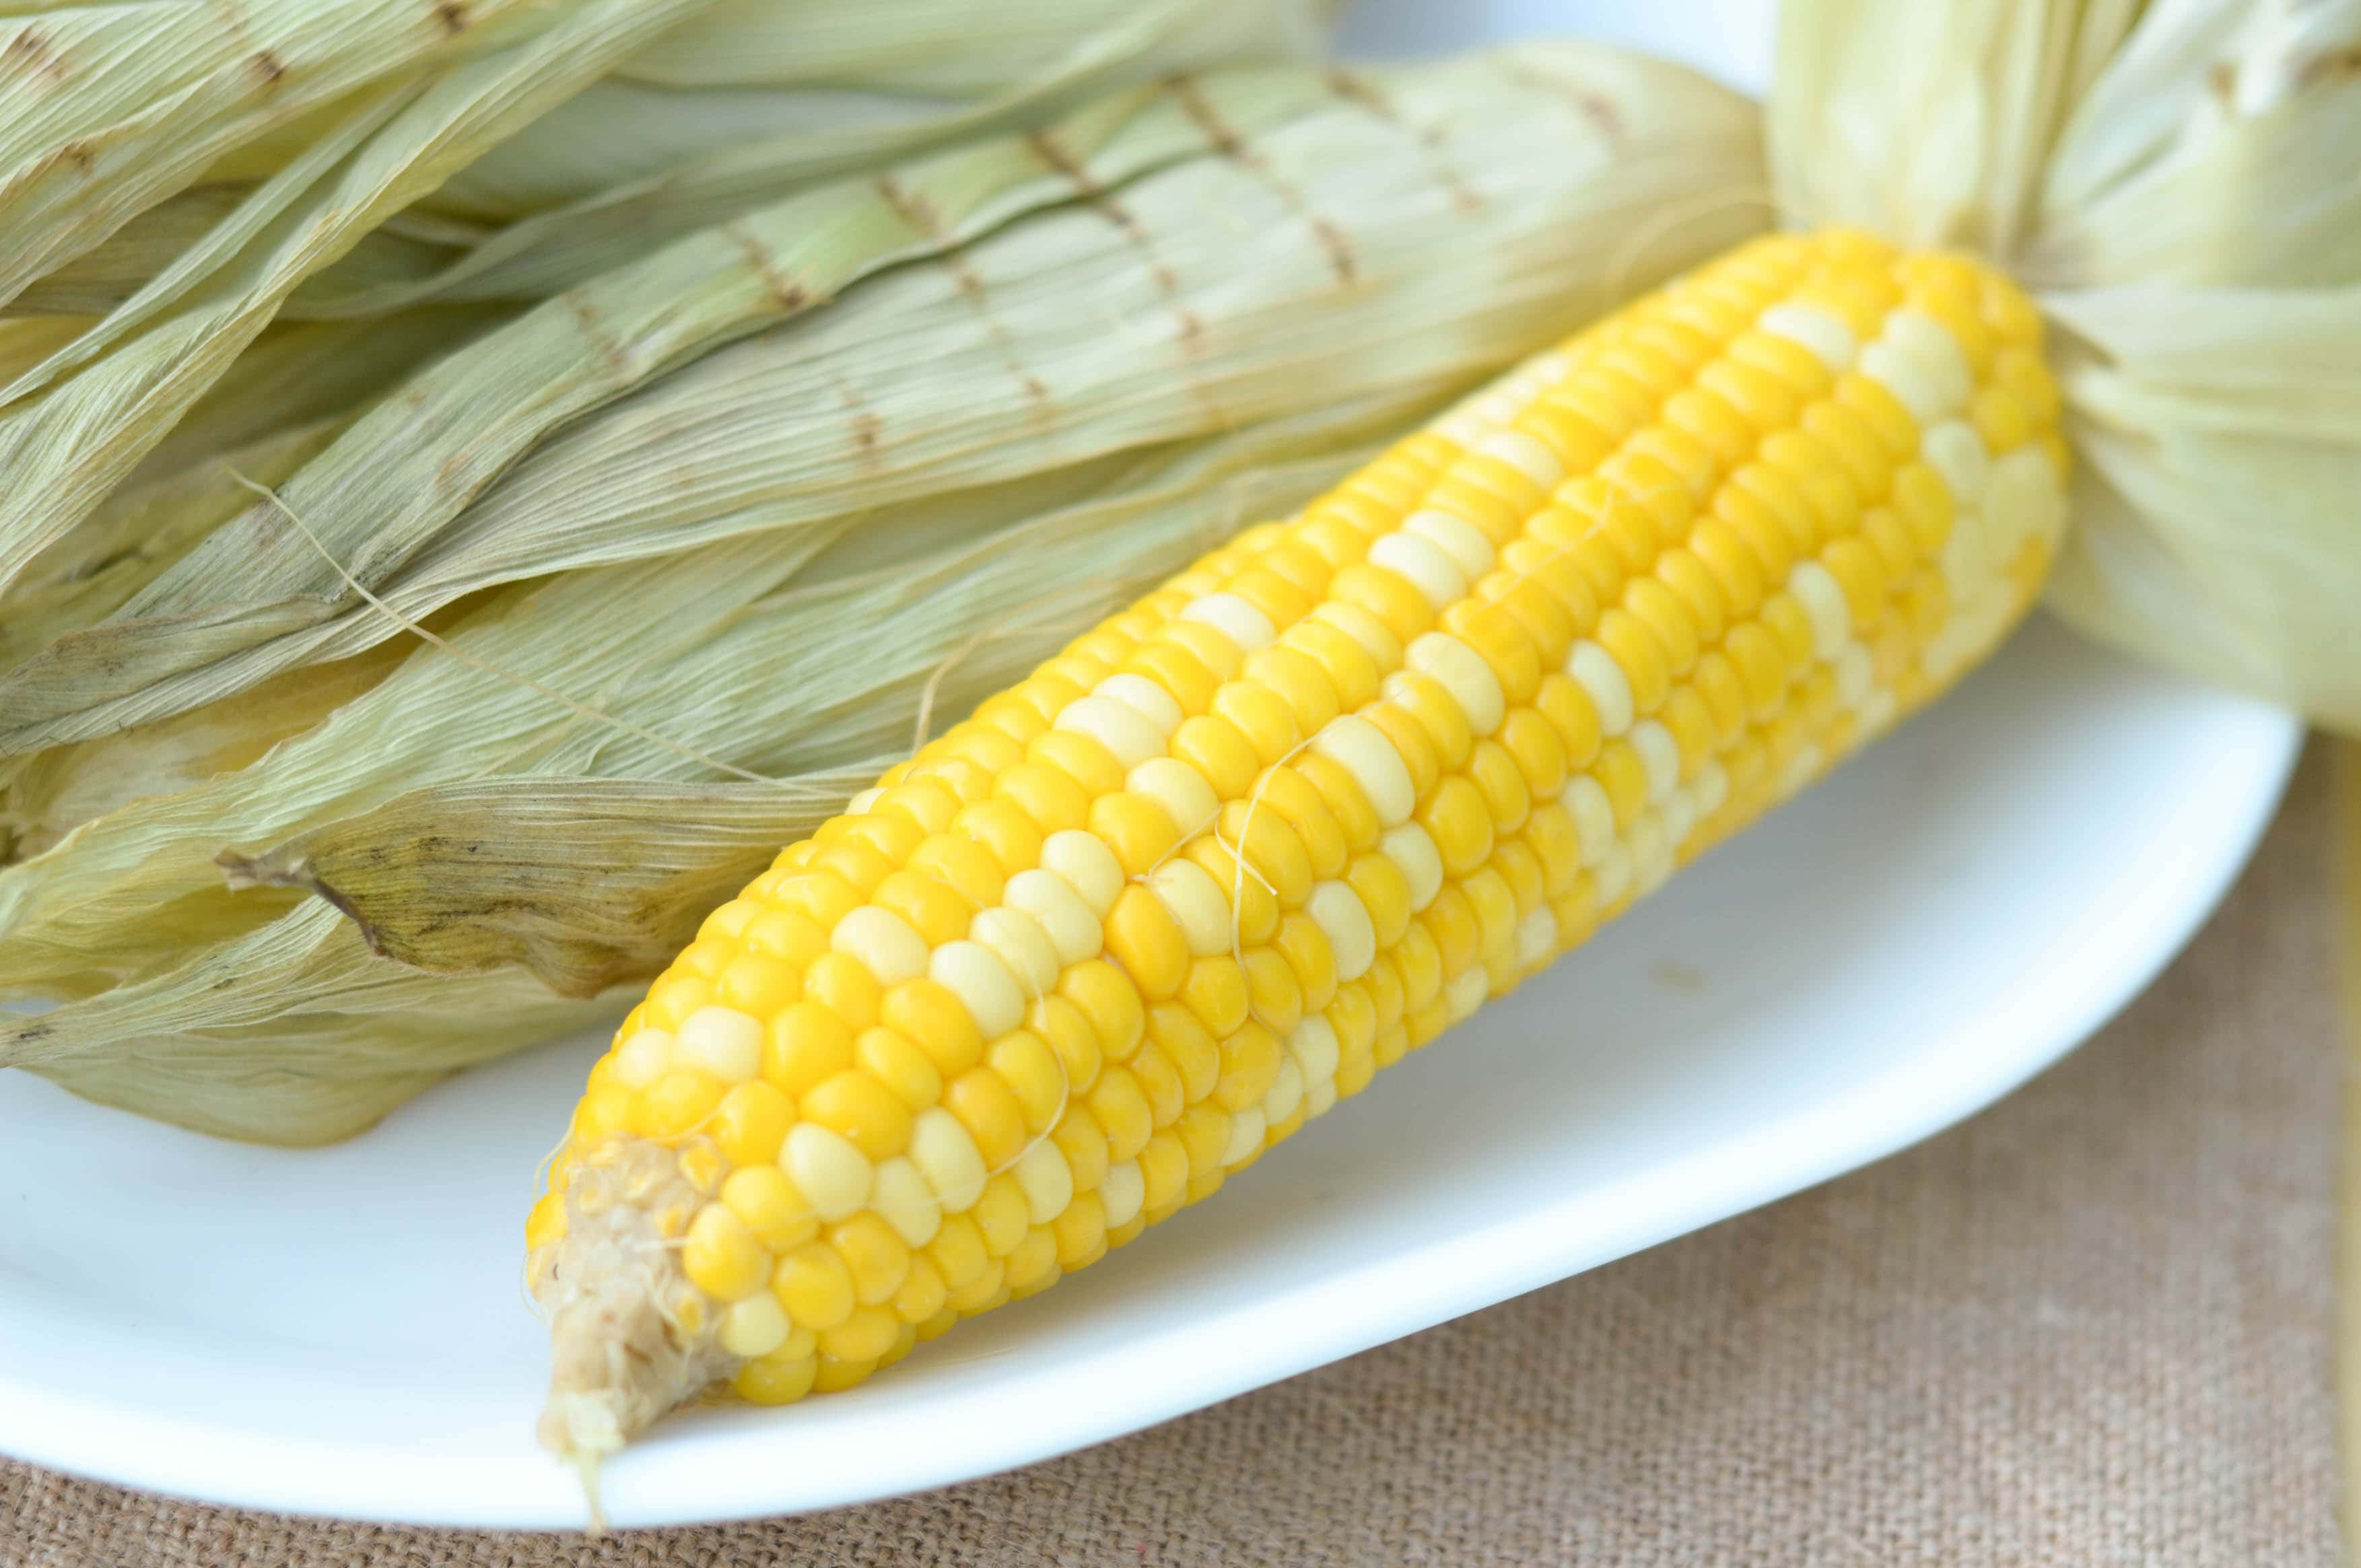 Asses porn sexy corn on the cob pussy exposed lips